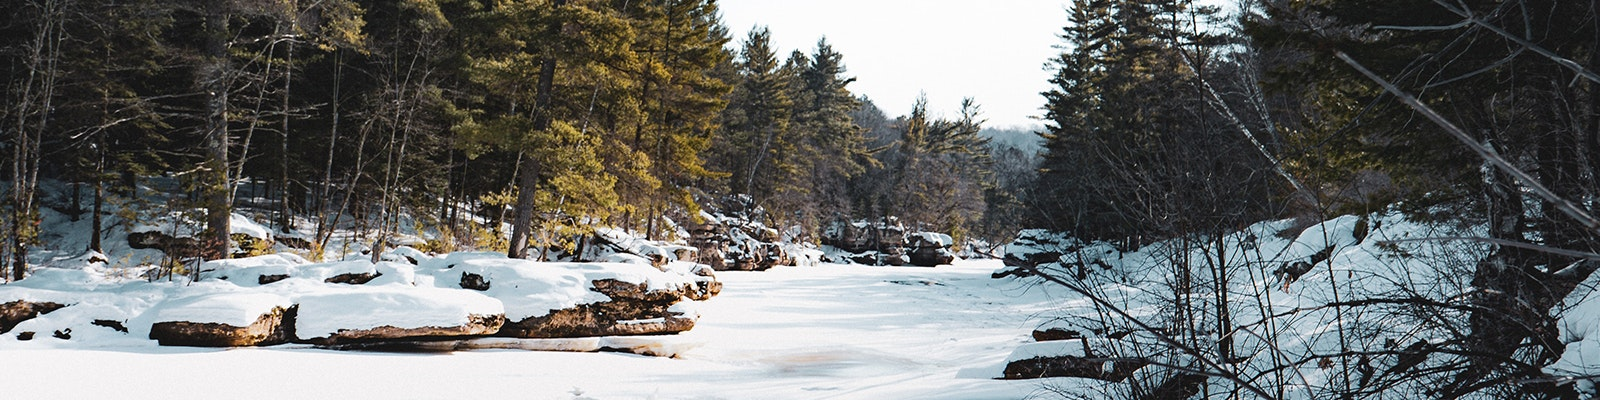 Minnesota forest and stream in winter